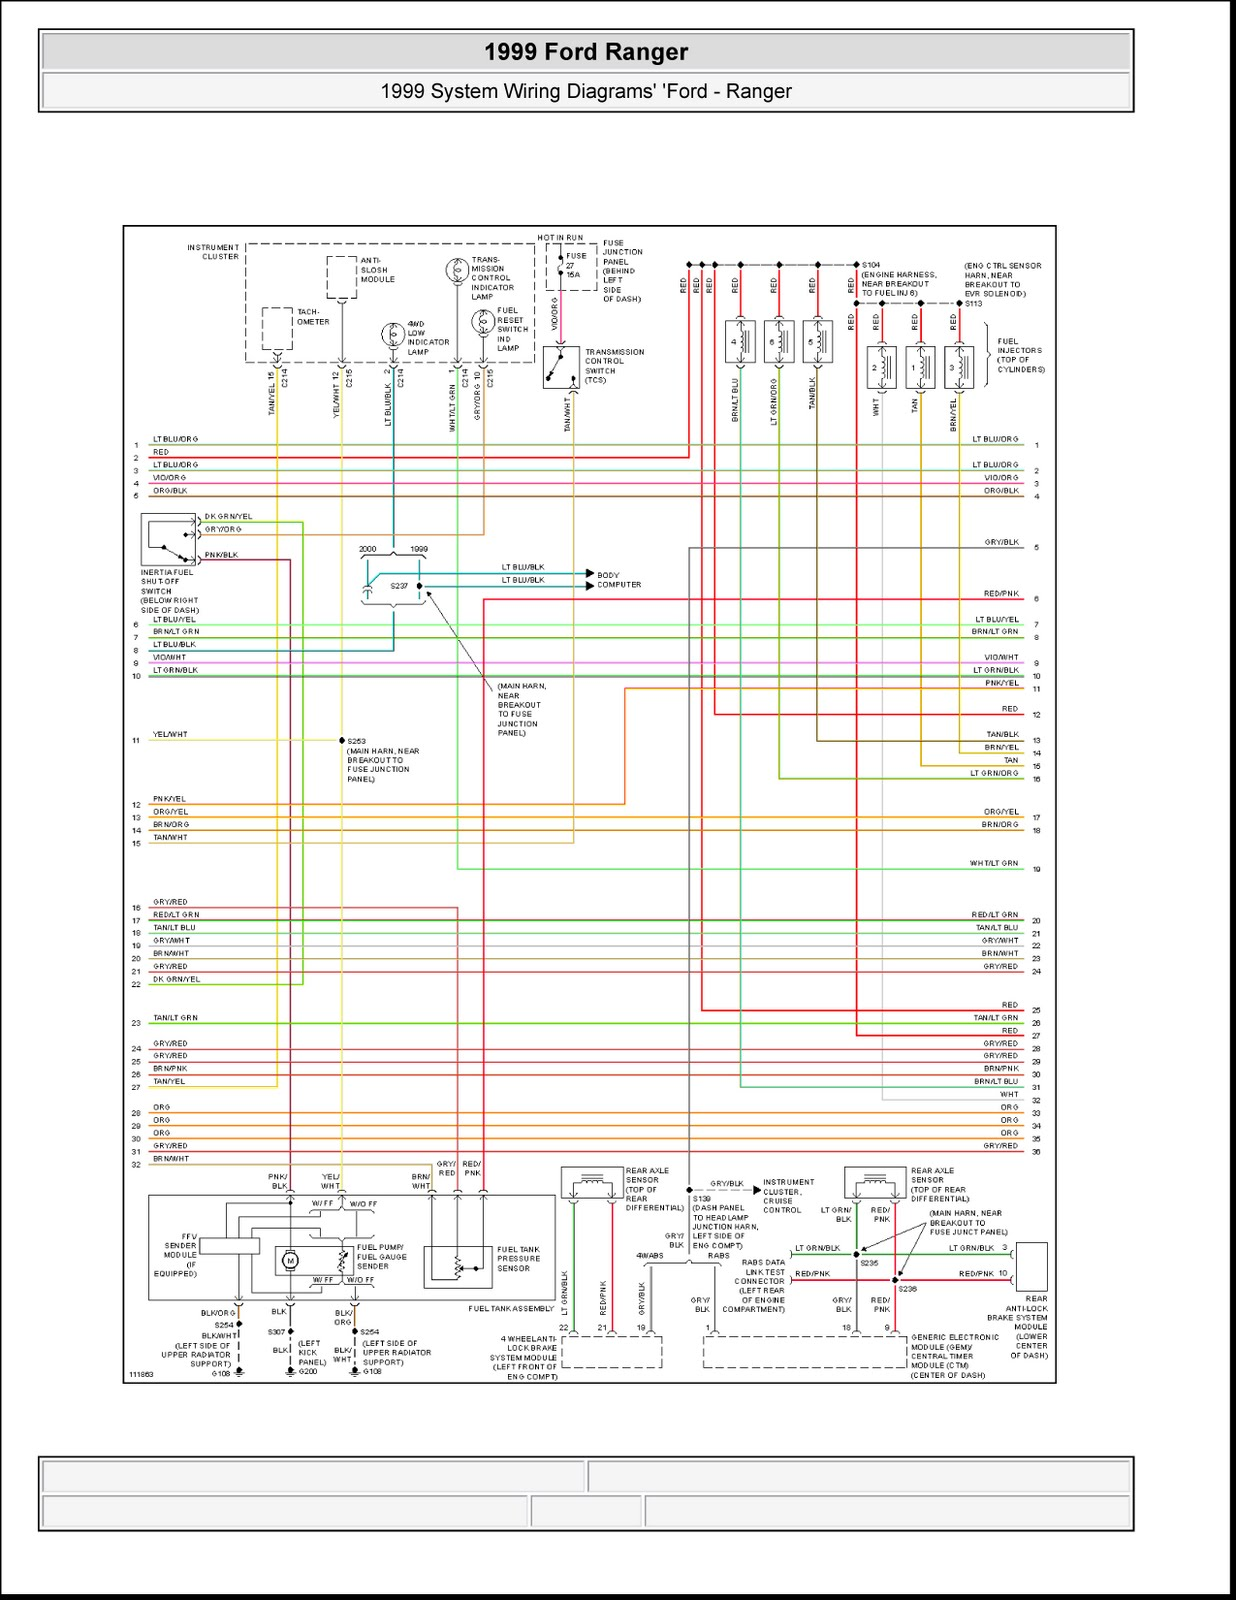 1999 ford ranger system wiring diagrams [ 1236 x 1600 Pixel ]